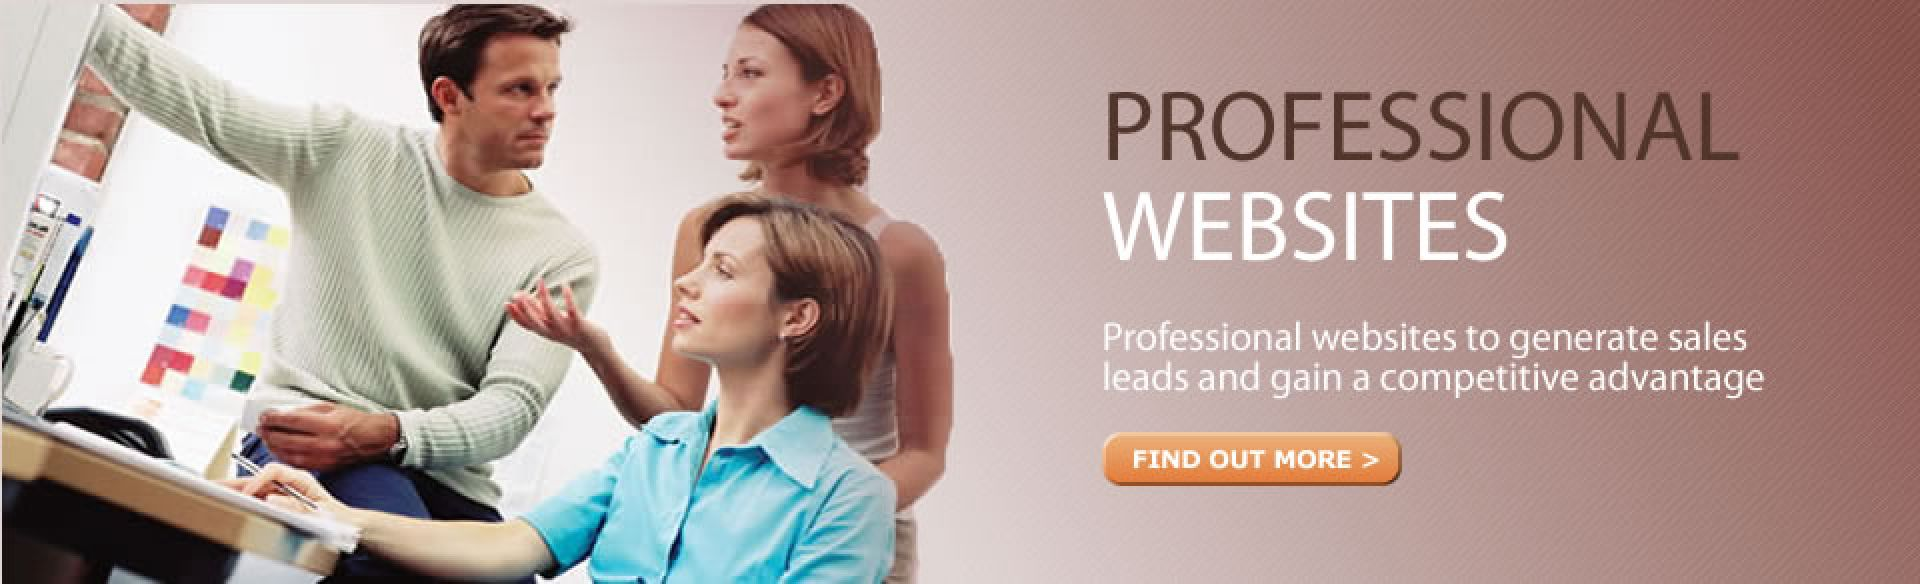 Professional Websites